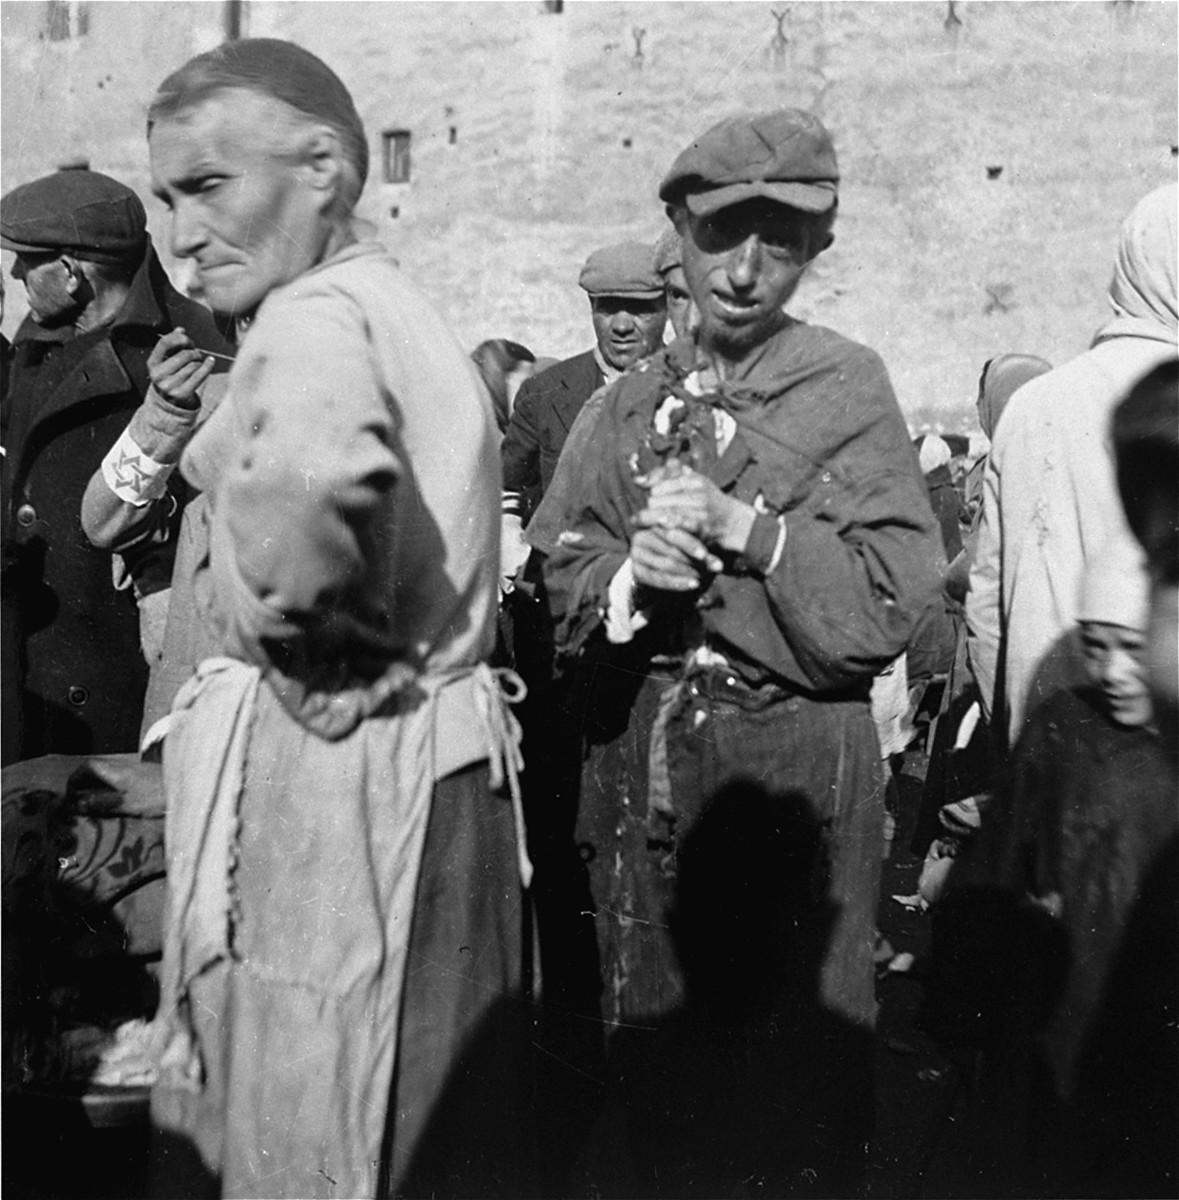 """A destitute Jewish man in the Warsaw ghetto wrings his hands after finishing a bowl of soup given to him in a public market by the woman at left.    Joest's caption reads: """"This other one had already eaten his soup, but did not look [as if his hunger was] satisfied."""""""